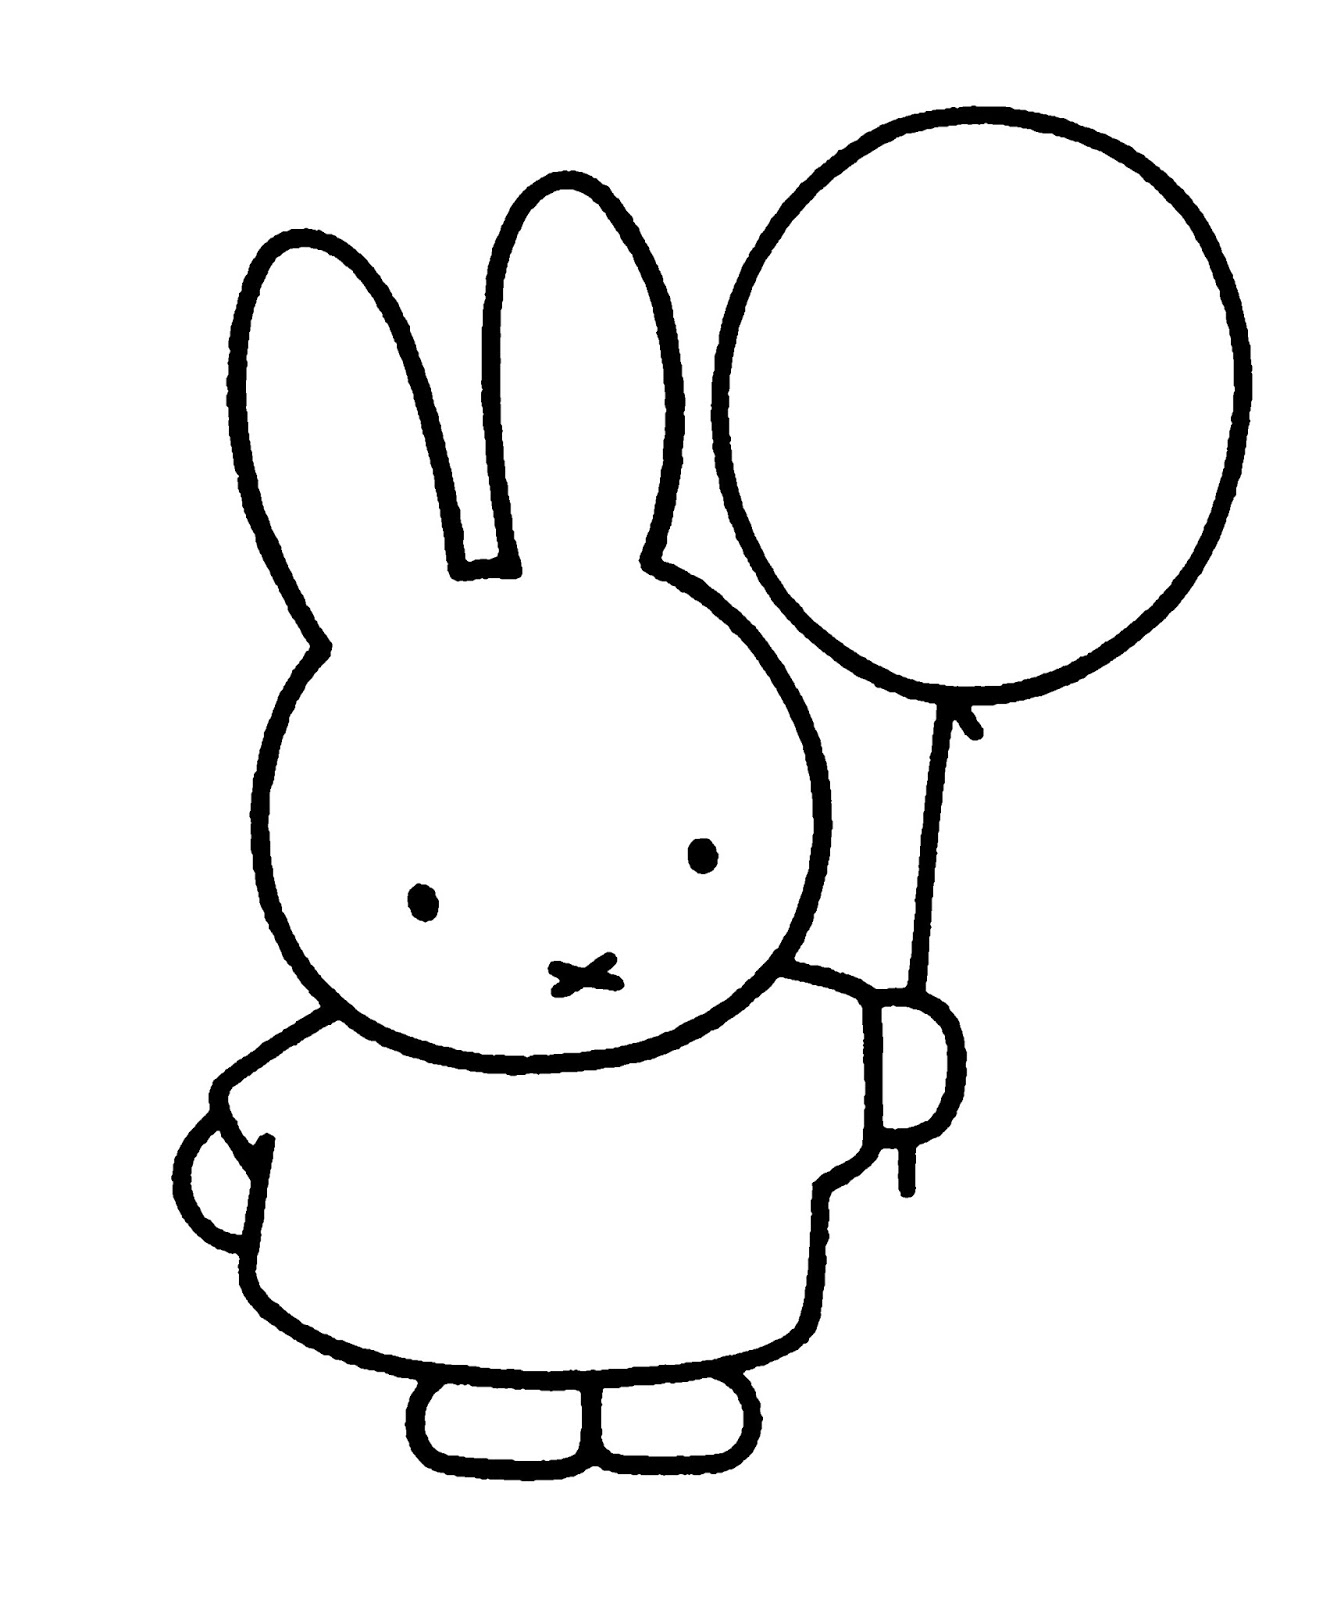 Cartoon Images For Colouring: Miffy Coloring Page For Kids